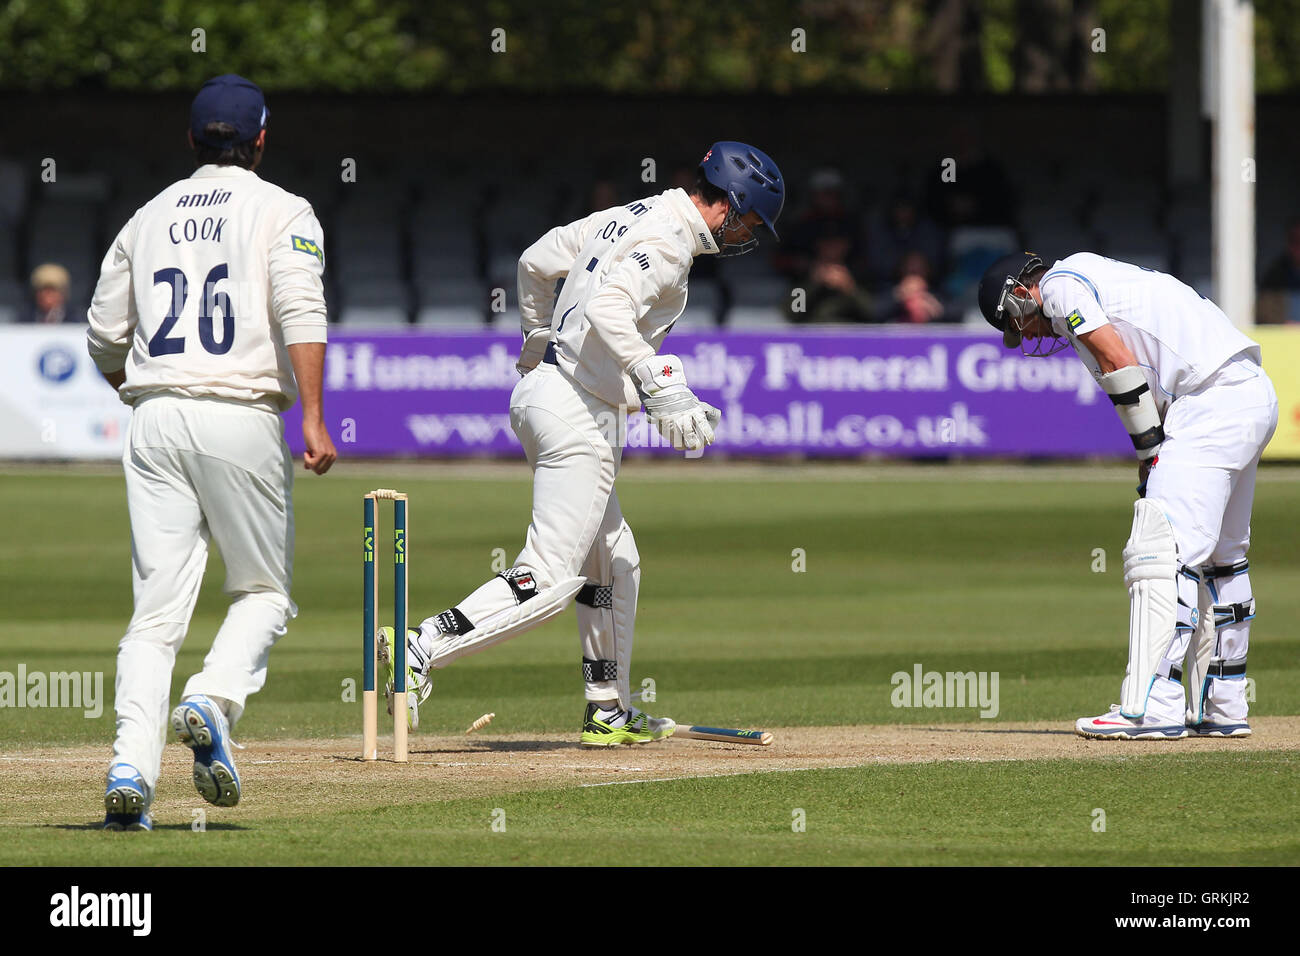 James Foster of Essex effects the stumping of Tim Groenewald - Essex CCC vs Derbyshire CCC - LV County Championship - Stock Image